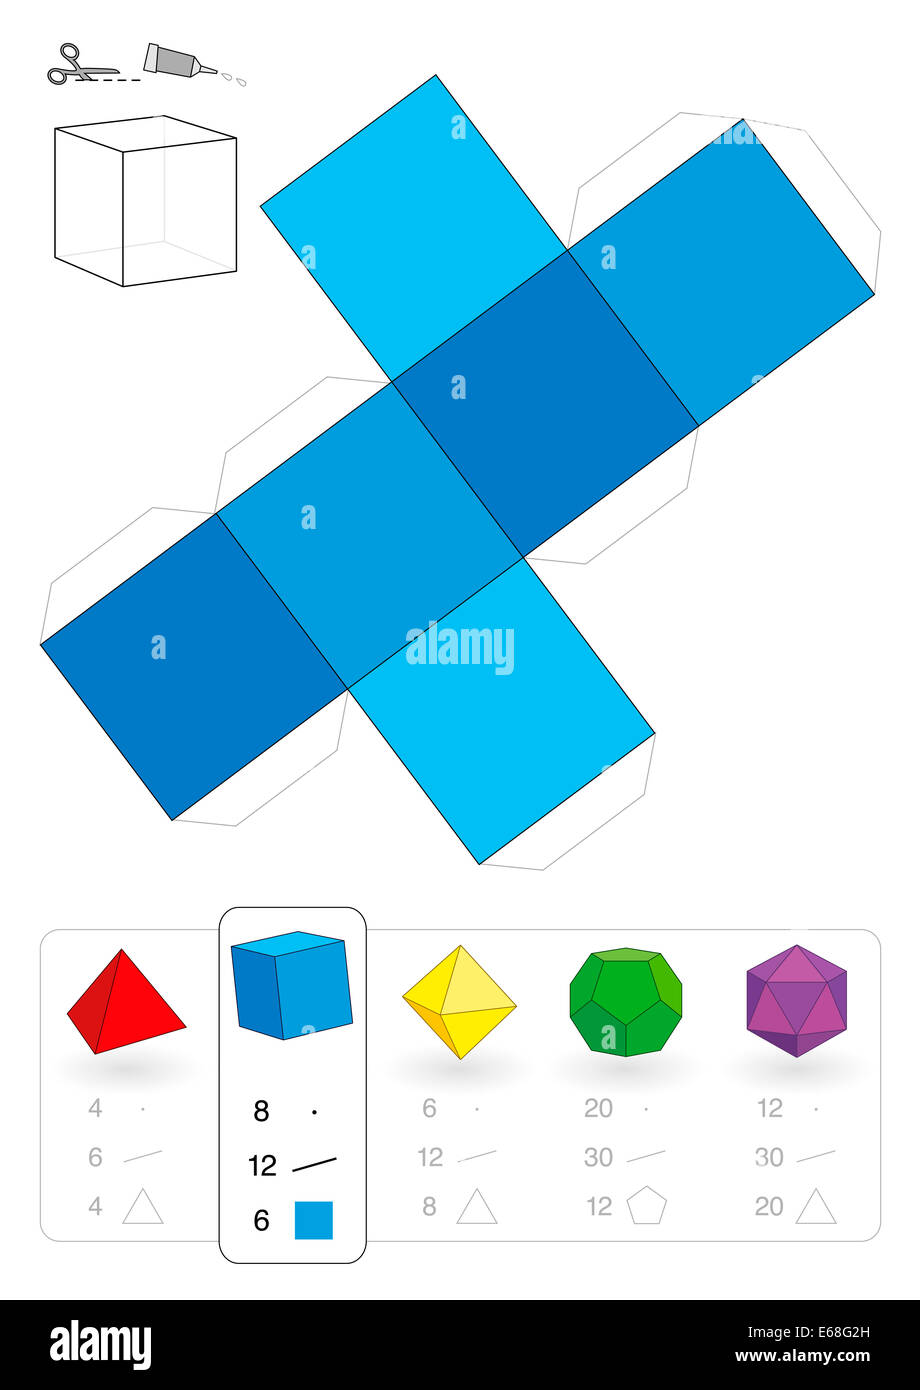 Paper model of a cube or hexahedron, one of five platonic solids, to make a three-dimensional handicraft work out - Stock Image